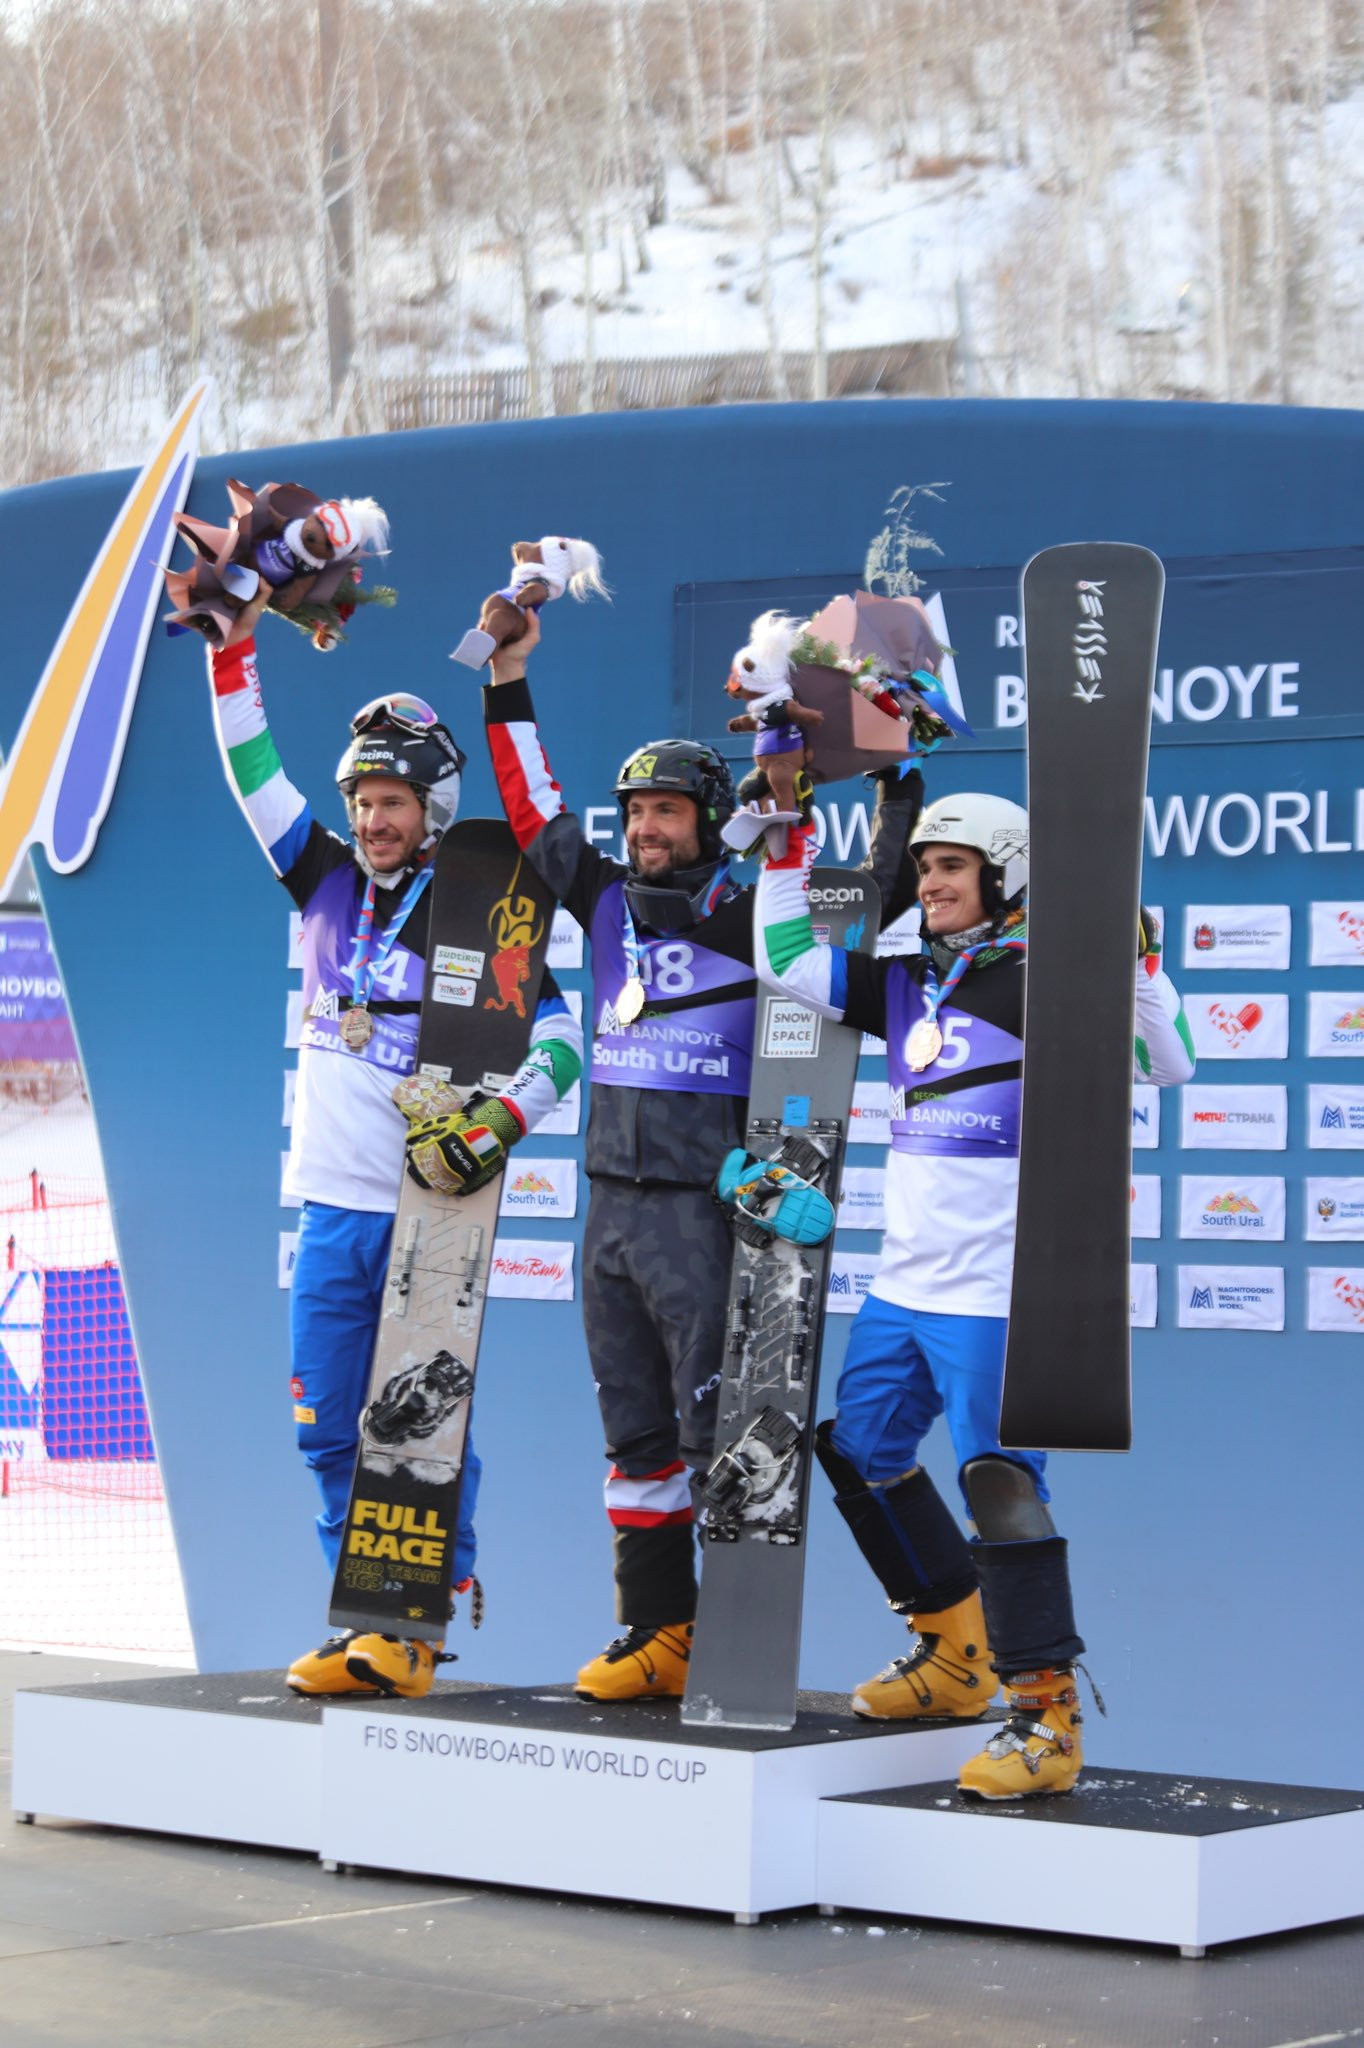 Andreas Prommegger of Austria topped the podium in the men's parallel slalom event ©FIS